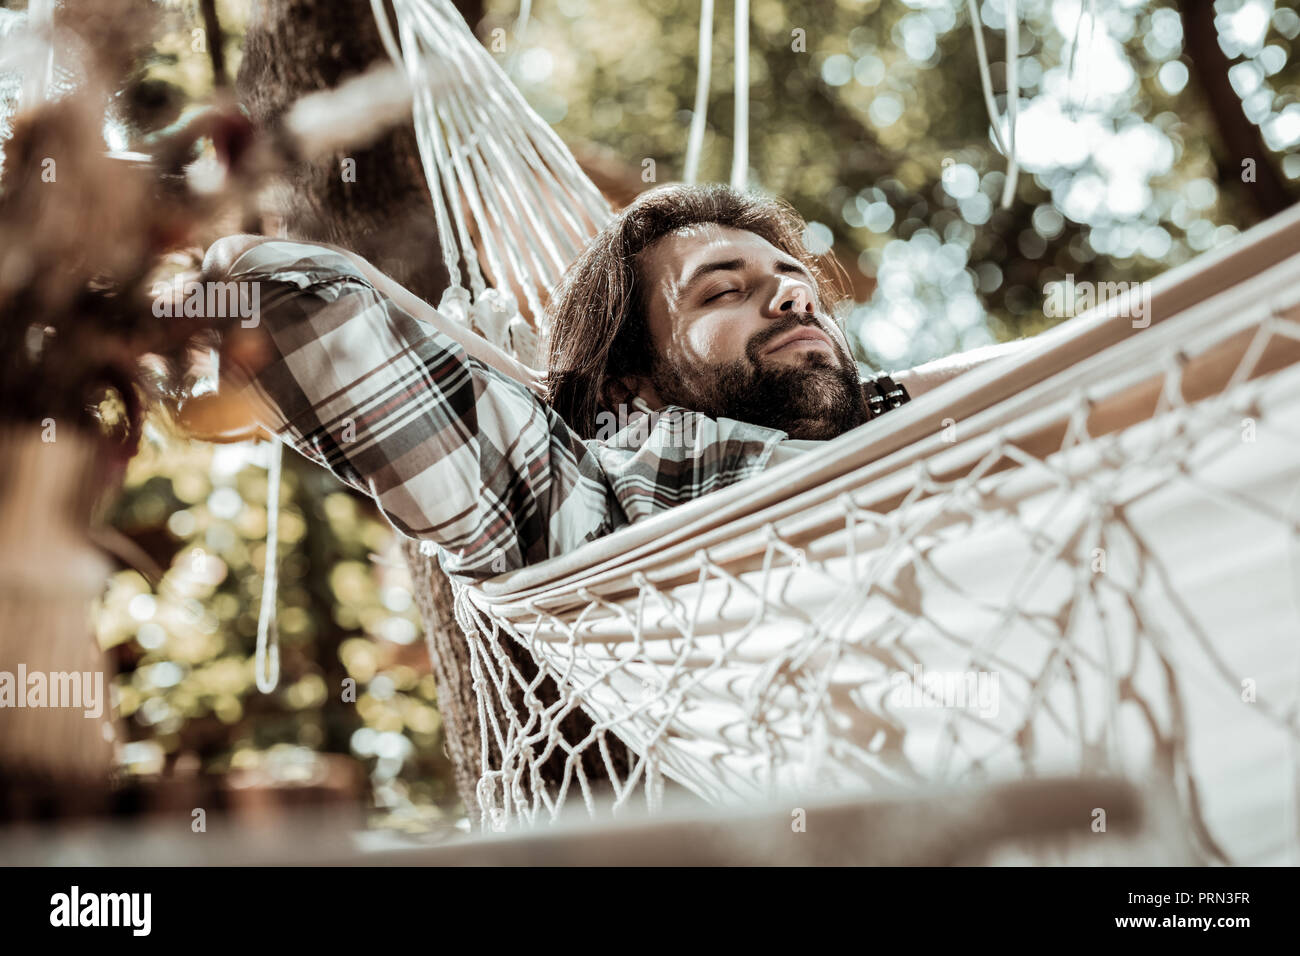 Handsome man dreaming about something in a hammock - Stock Image